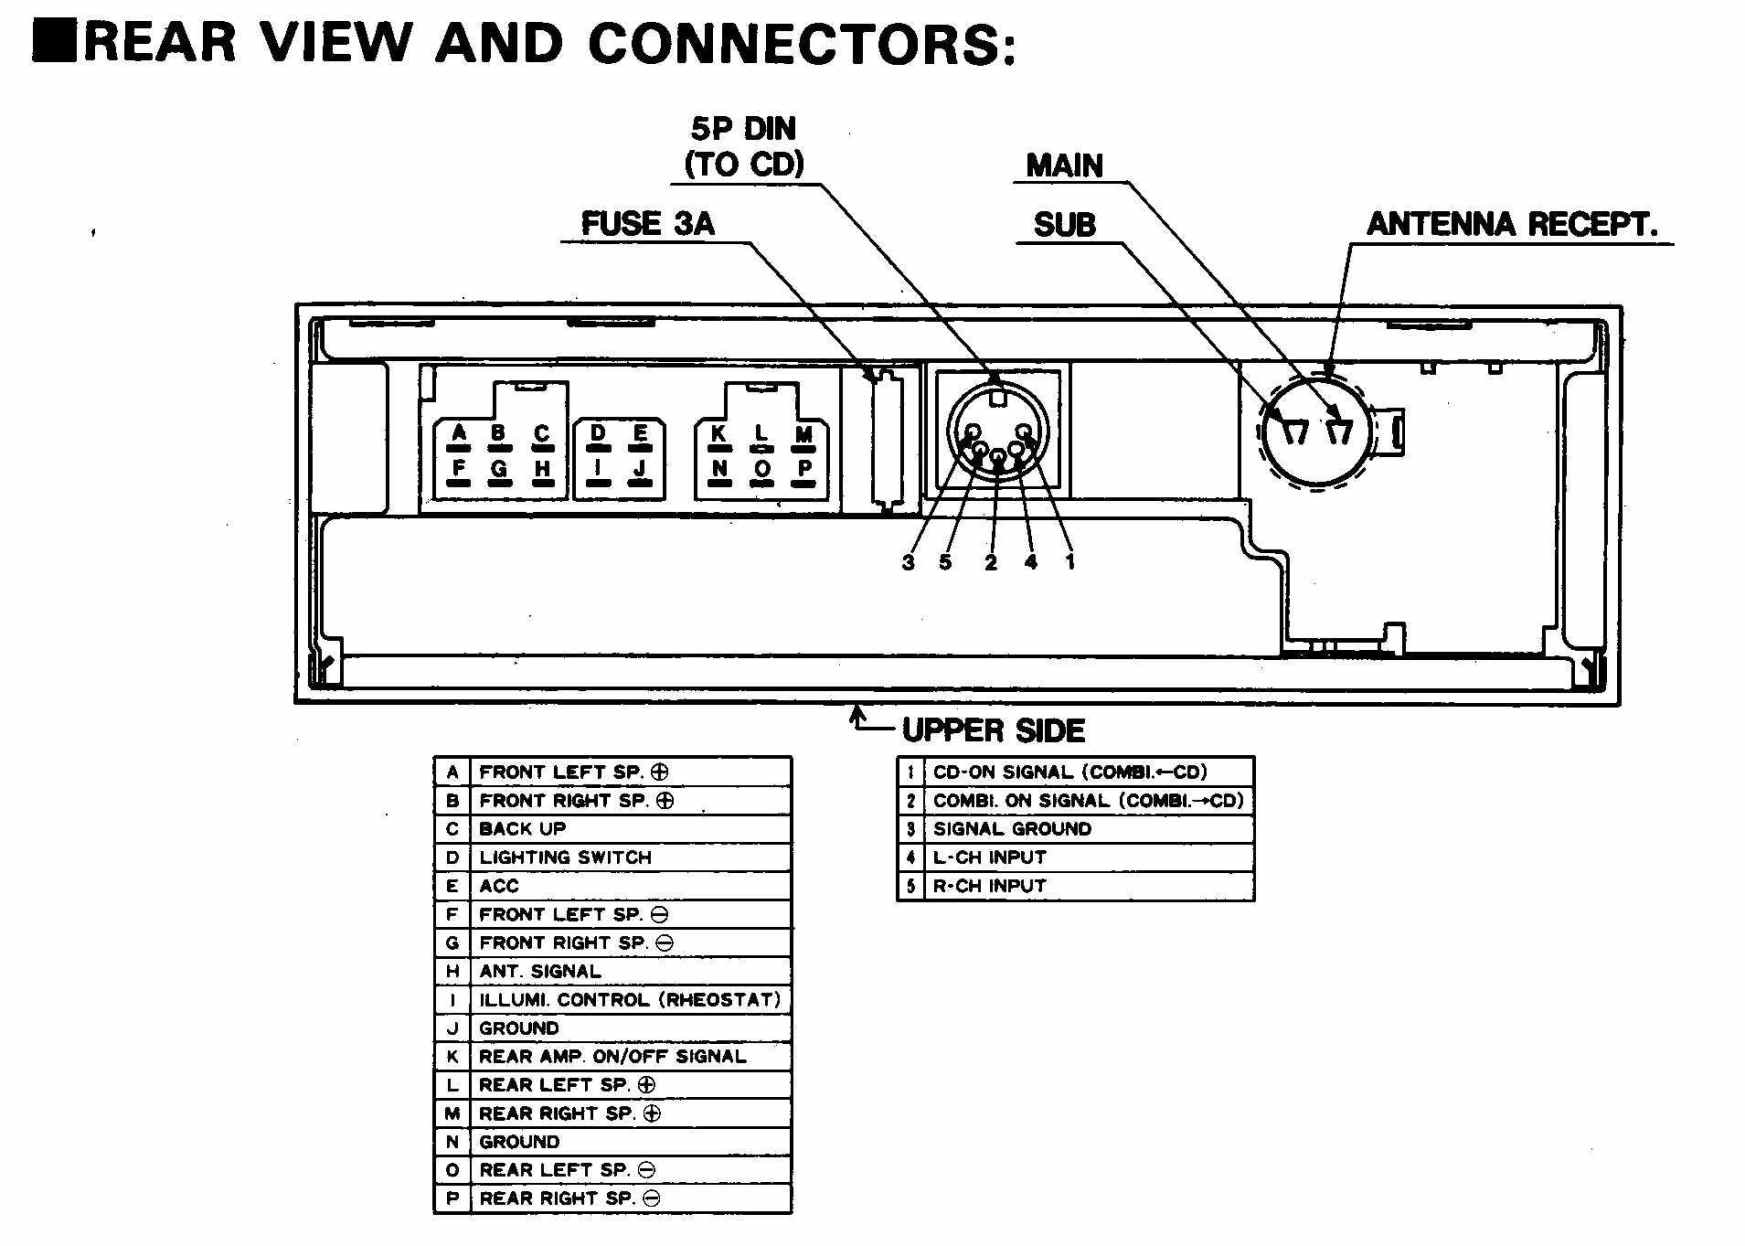 panasonic car stereo wiring harness diagram wiring diagrams panasonic car stereo wiring diagram diagrams get image